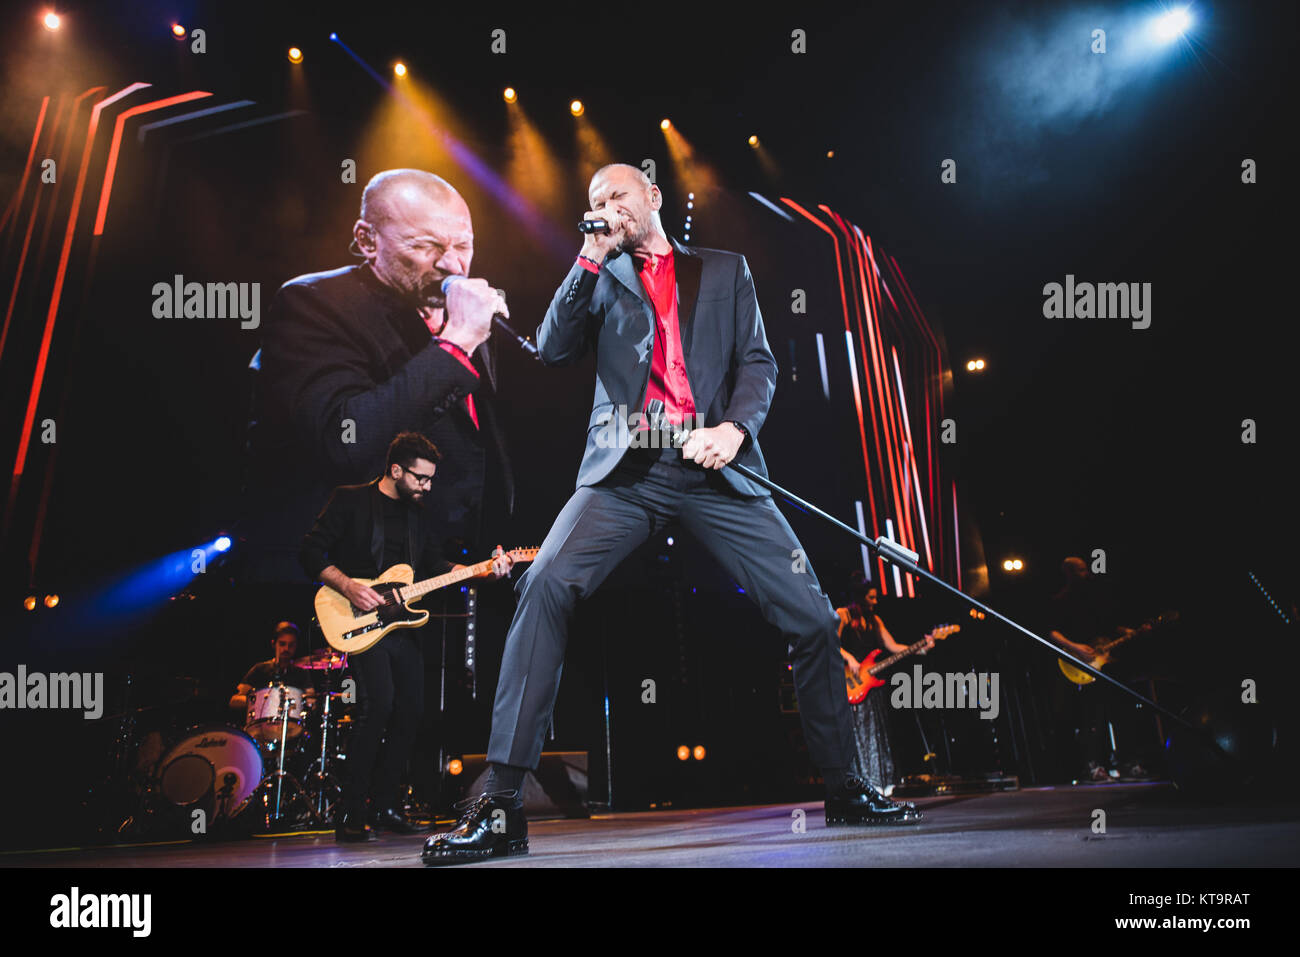 Turin, Italy. 21st Dec, 2017. Italy, 2017 December 21st: The Italian singer and song writer Biagio Antonacci performing Stock Photo